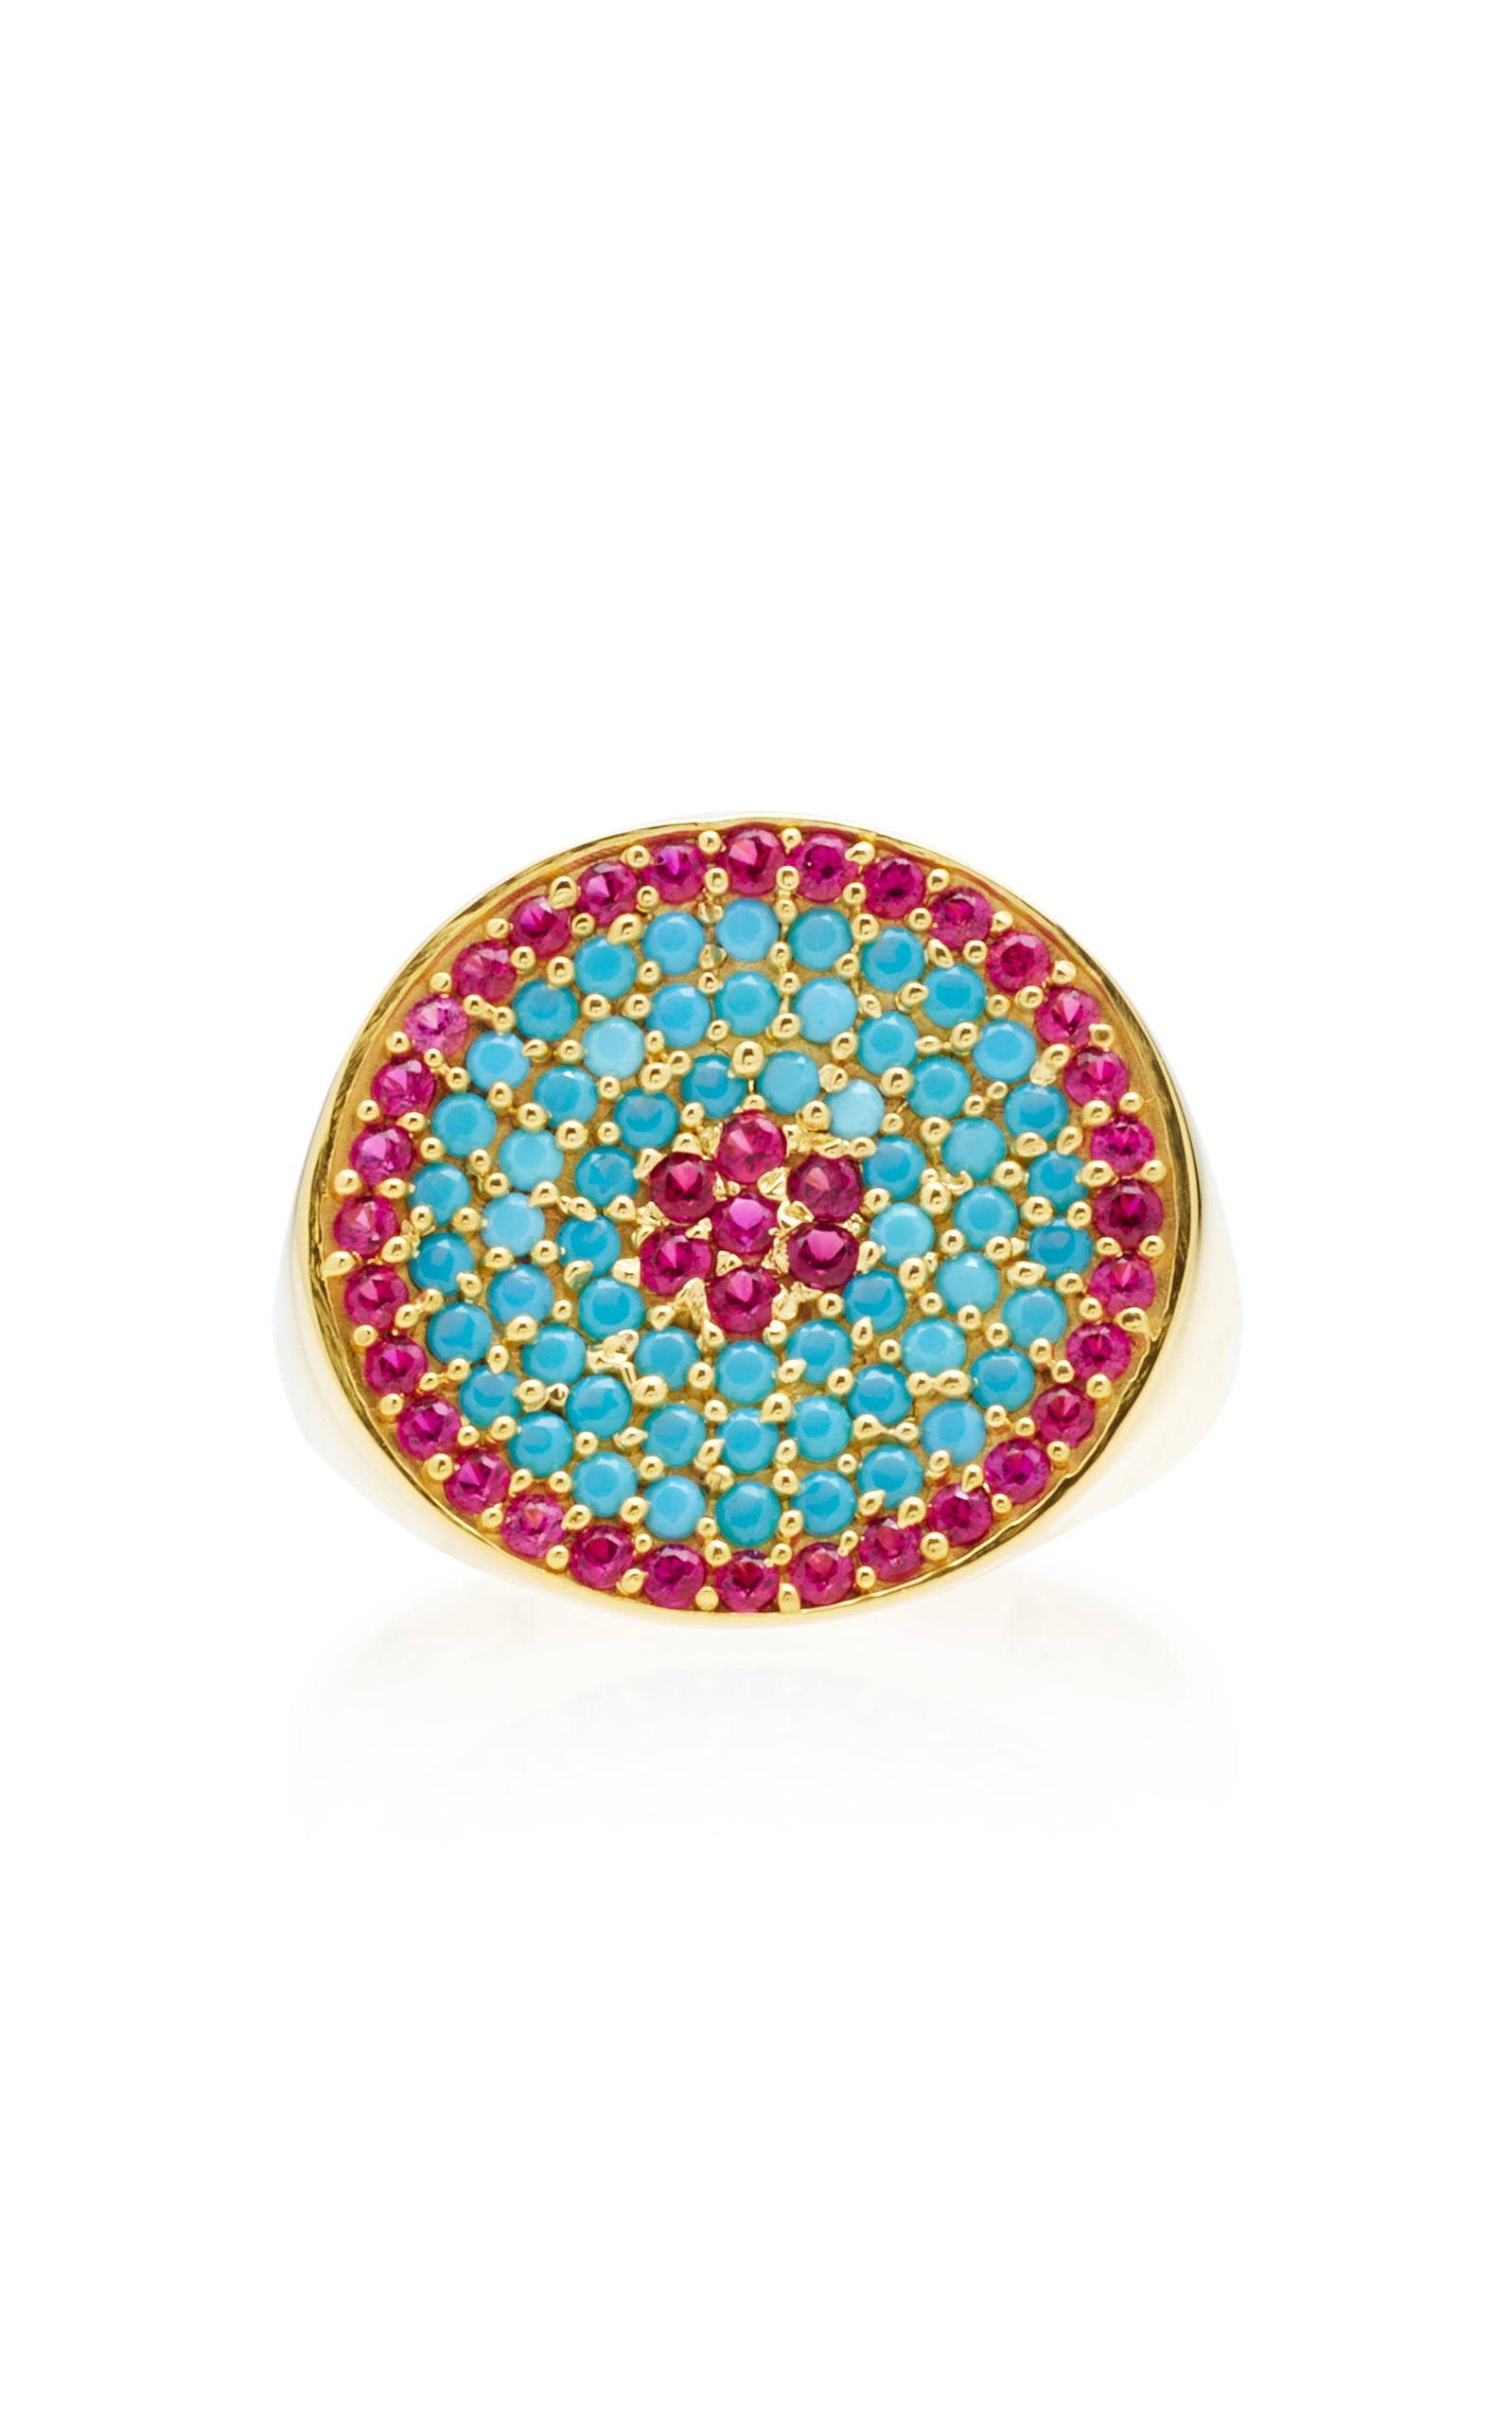 JOANNA LAURA CONSTANTINE GOLD-PLATED RUBY AND TURQUOISE TRIBAL PINKY RING